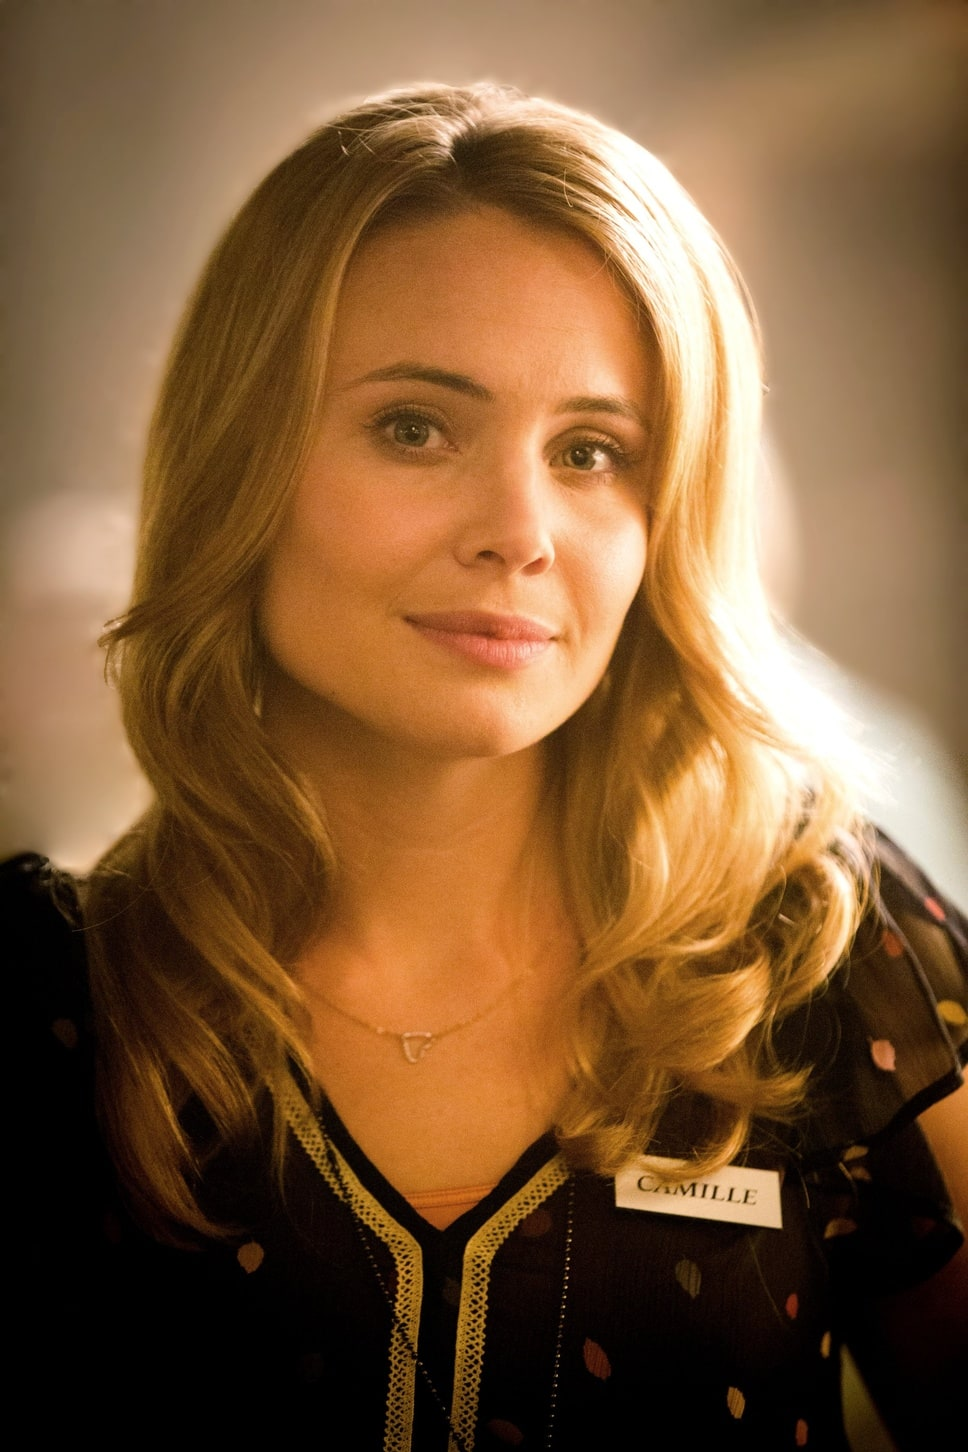 leah pipes - photo #4